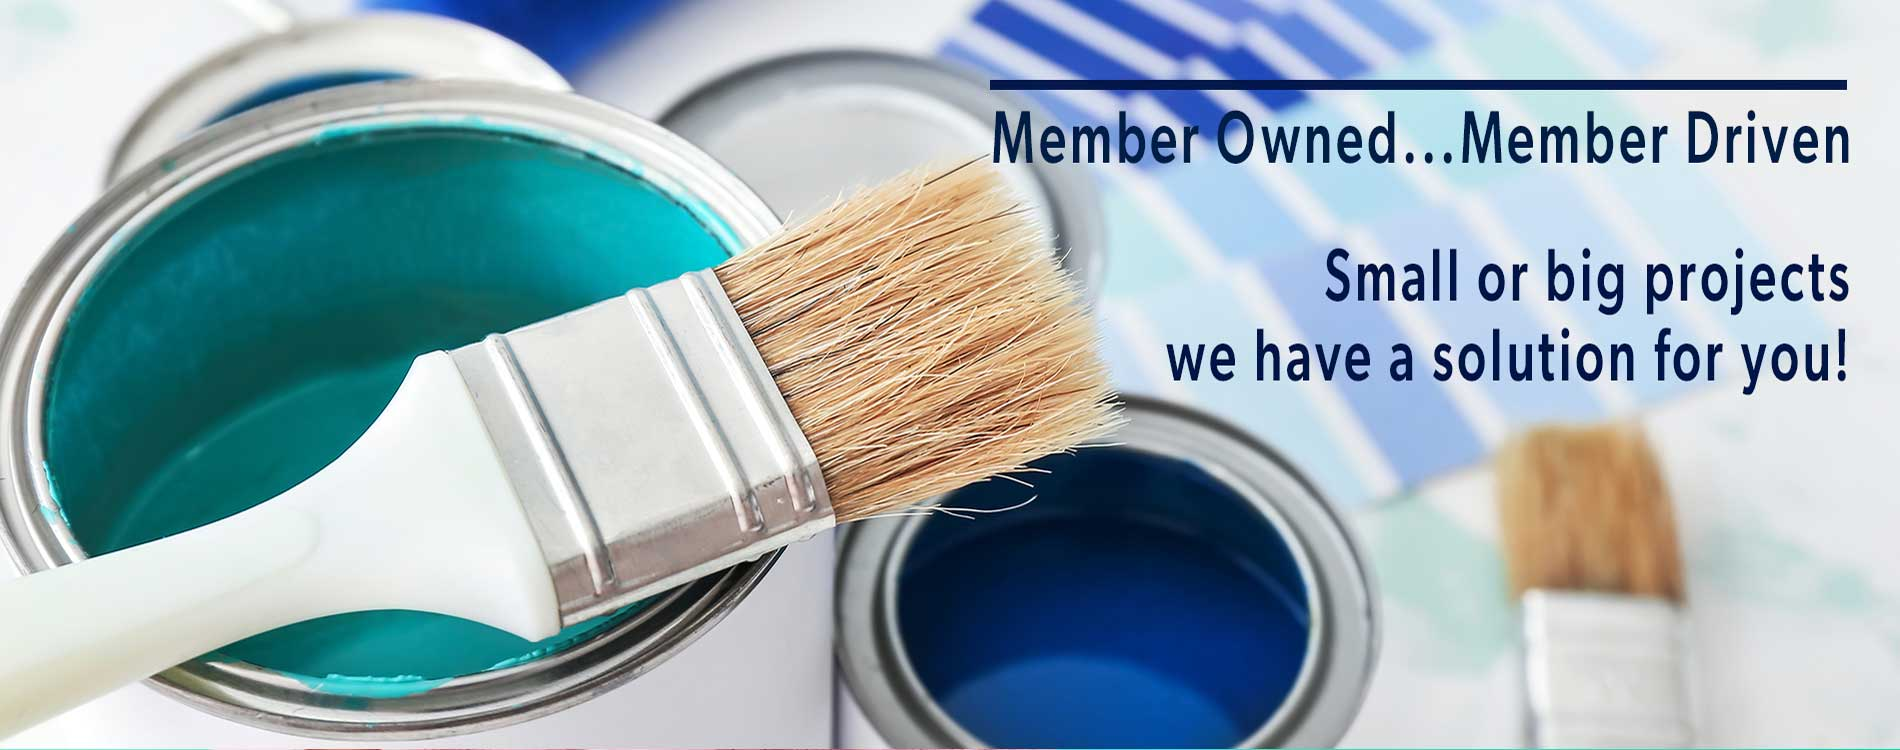 Member Owned...Member Driven. Small or big projects we have a solution for you!